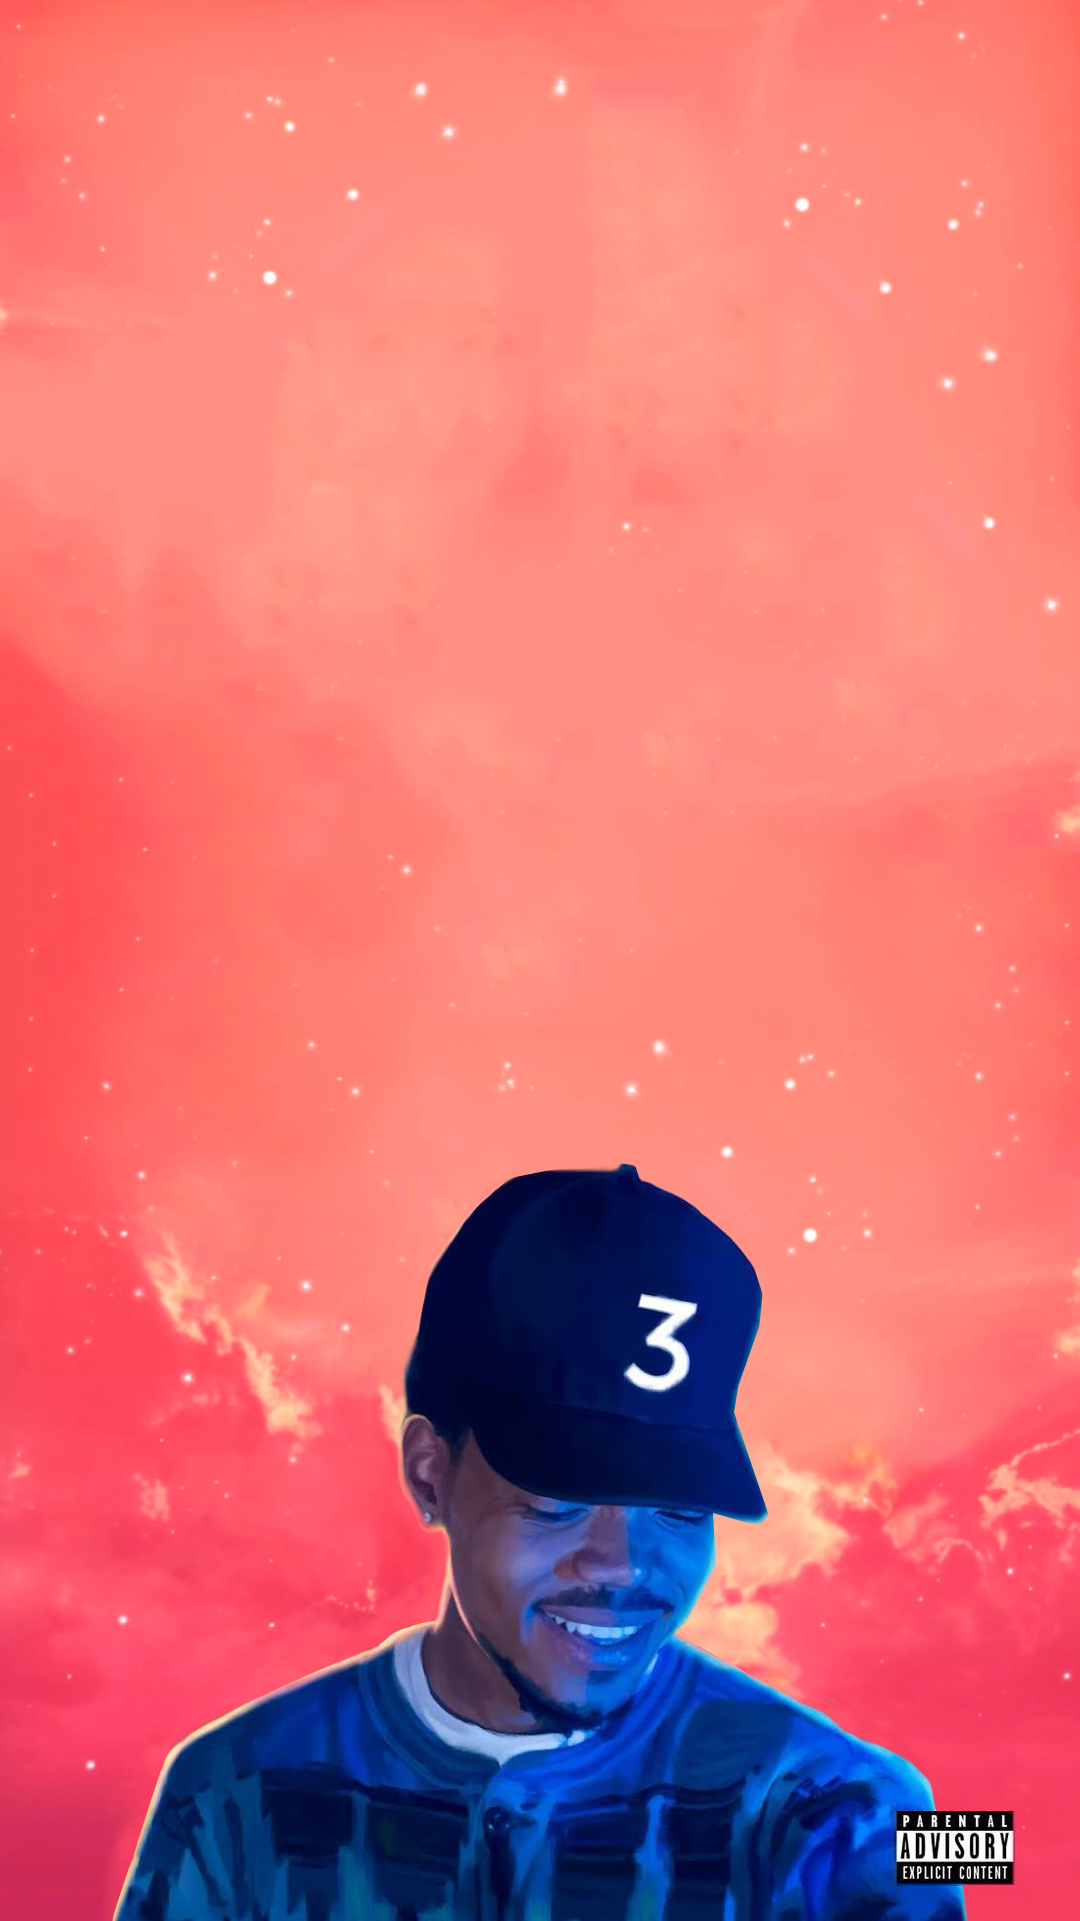 1080x1920 Chance 3 Need Iphone 6s Plus Wallpaper Background For Iphone6splus Follow Iphone Chance The Rapper Coloring Book Album Coloring Book Chance